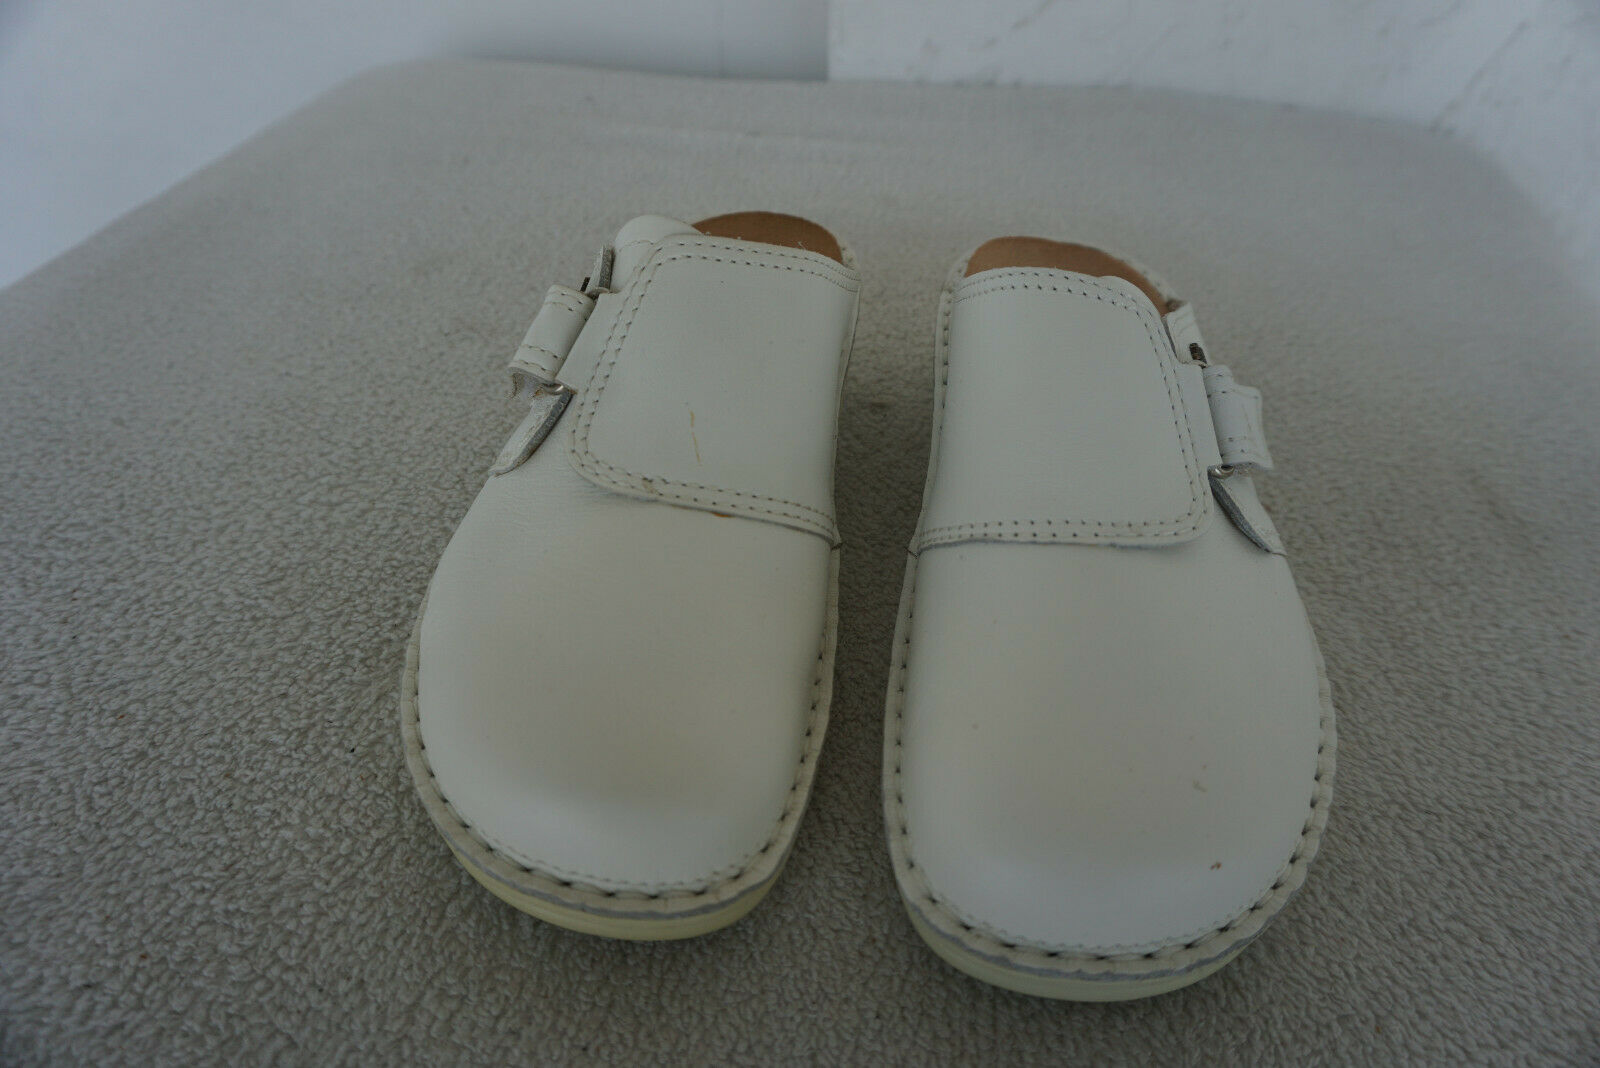 Finn Comfort Orb shoes Sandals Clogs with Insoles Size 3,5 36 White Leather New